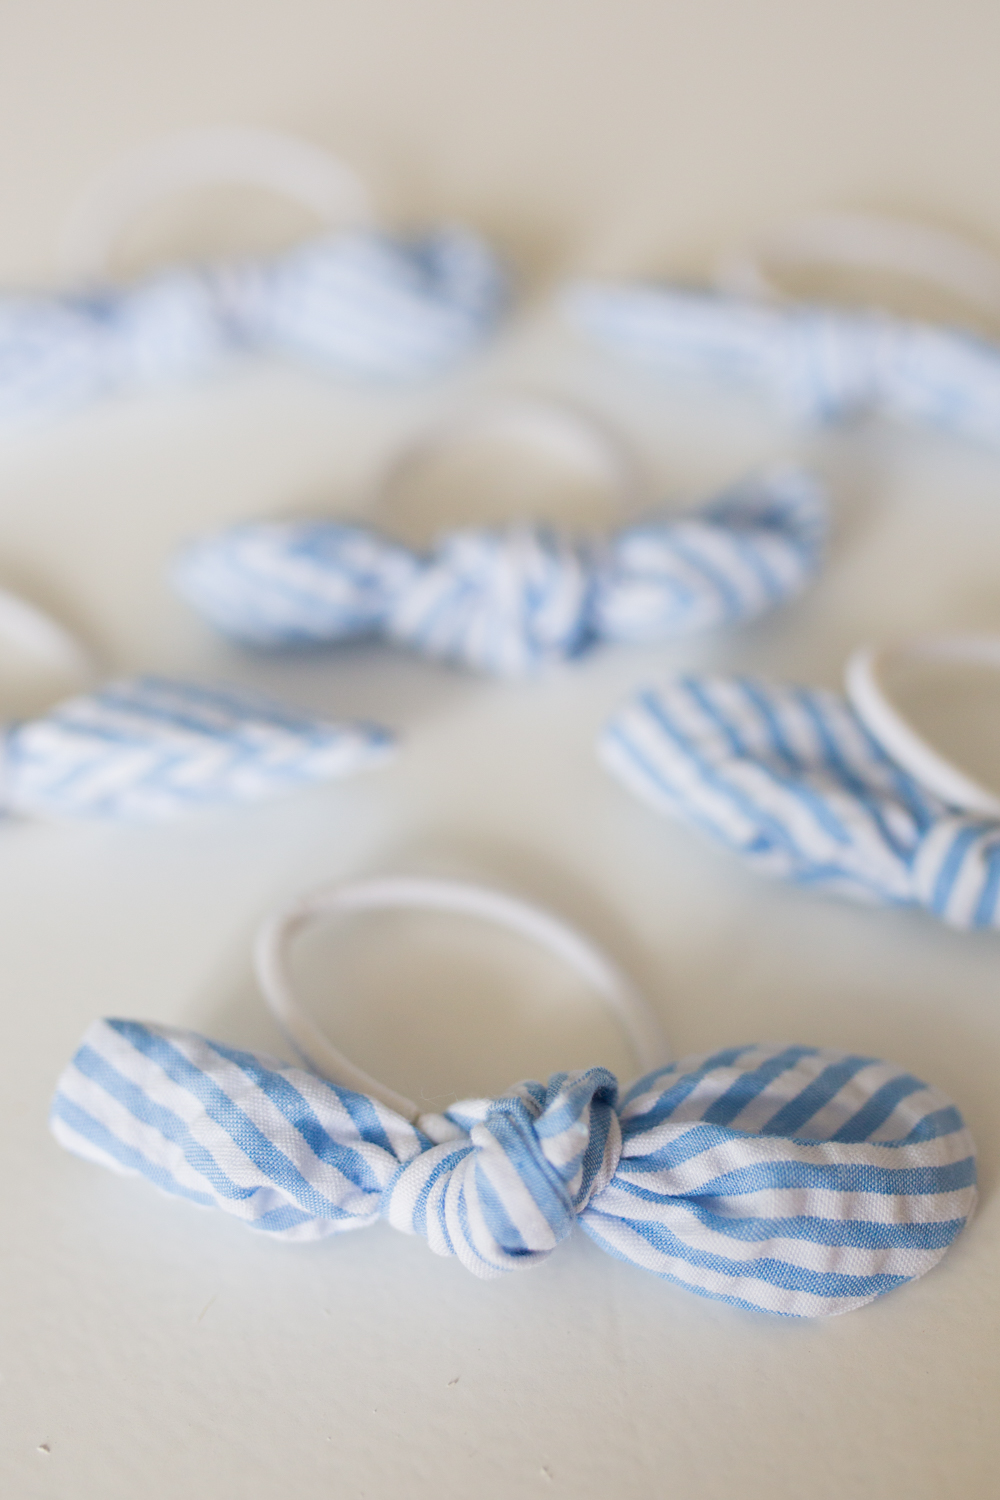 Sunshine Style Co. Elastic Bow Hair Ties / Hair Accessory / Preppy Outfit Inspiration / Blue Seersucker Fabric - Sunshine Style, A Florida based Fashion and Lifestyle Blog